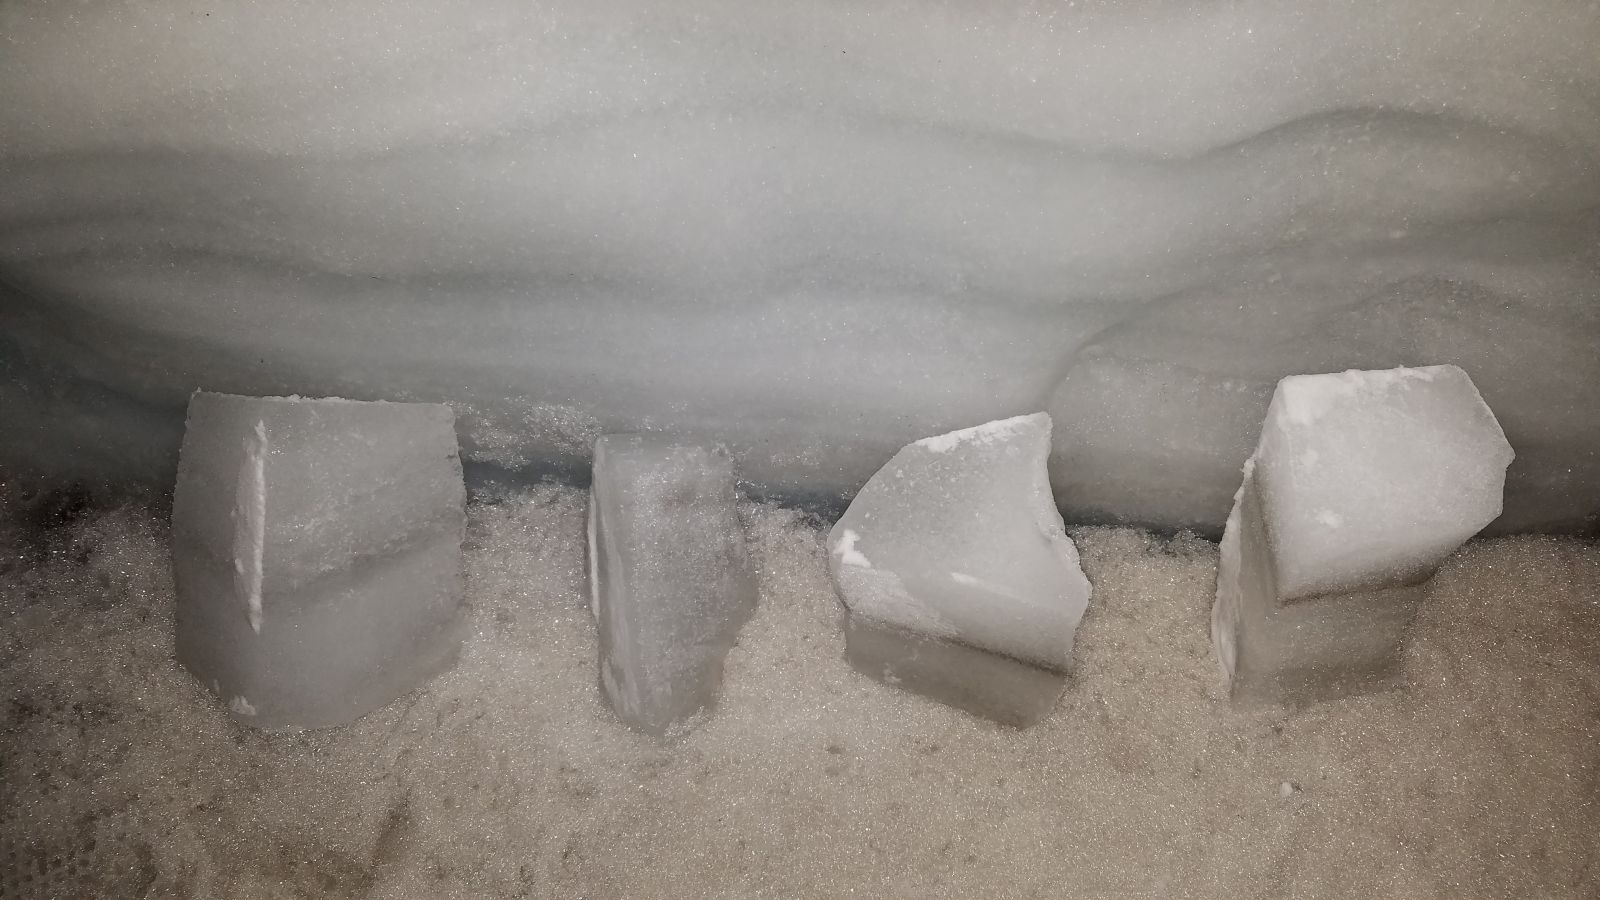 ice samples